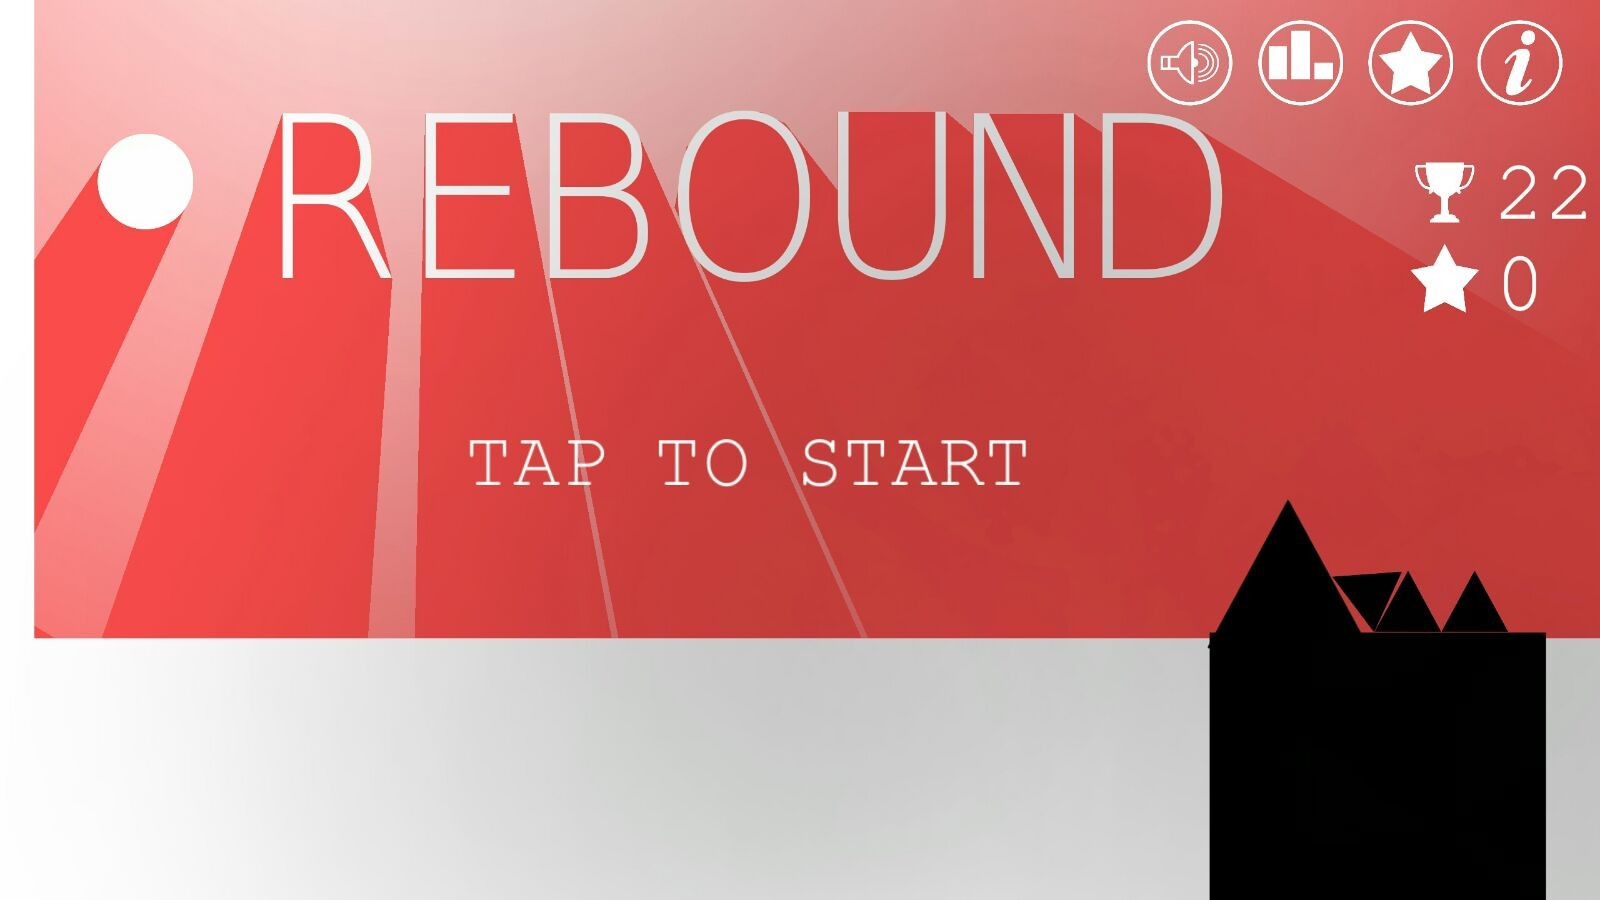 Absurd Rebound - Most impossible game